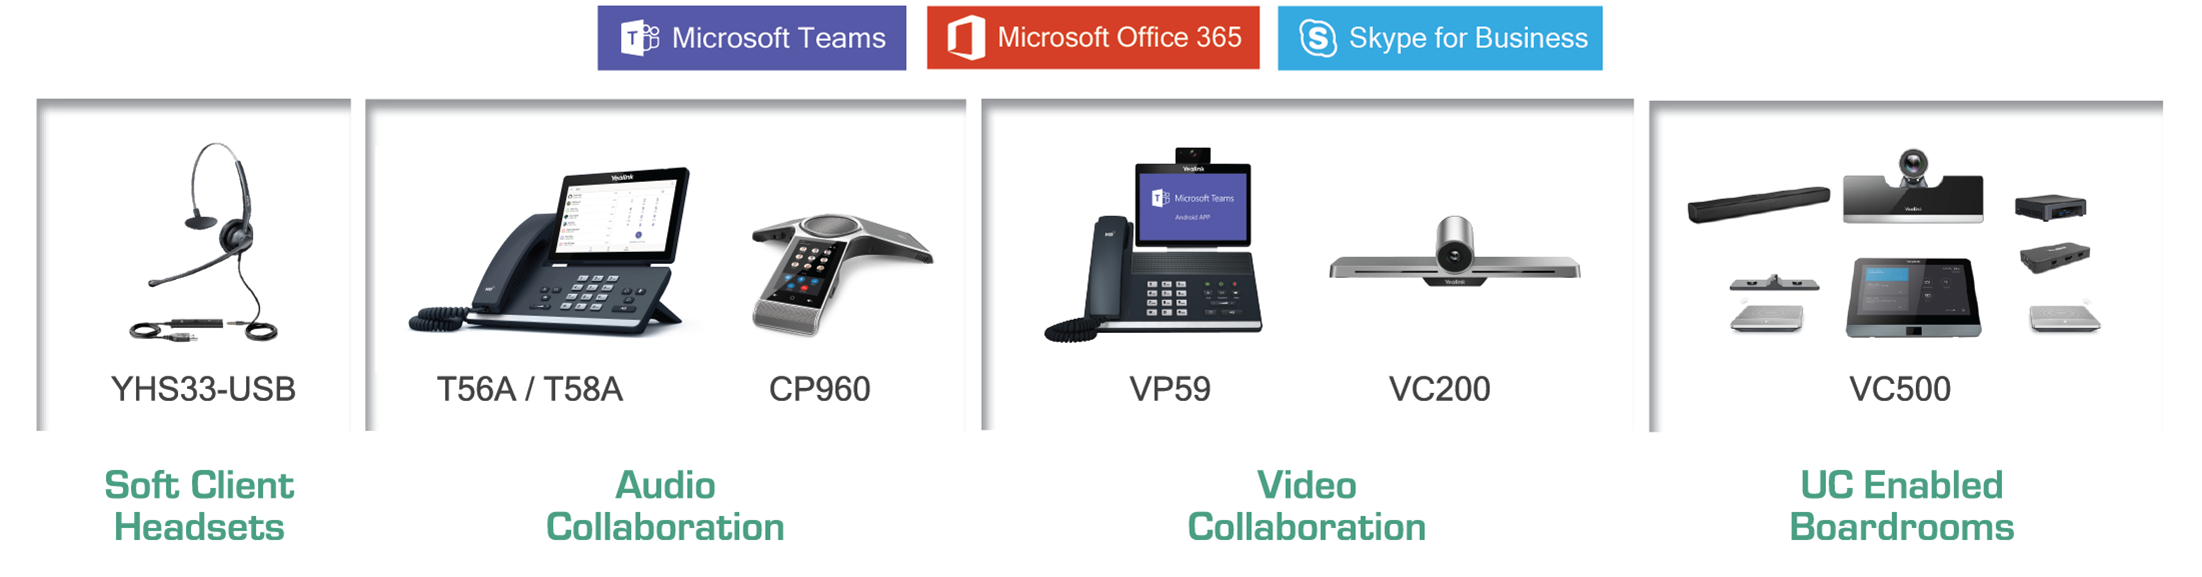 MicroSoft teAMS, Office & Skype for Business Devices